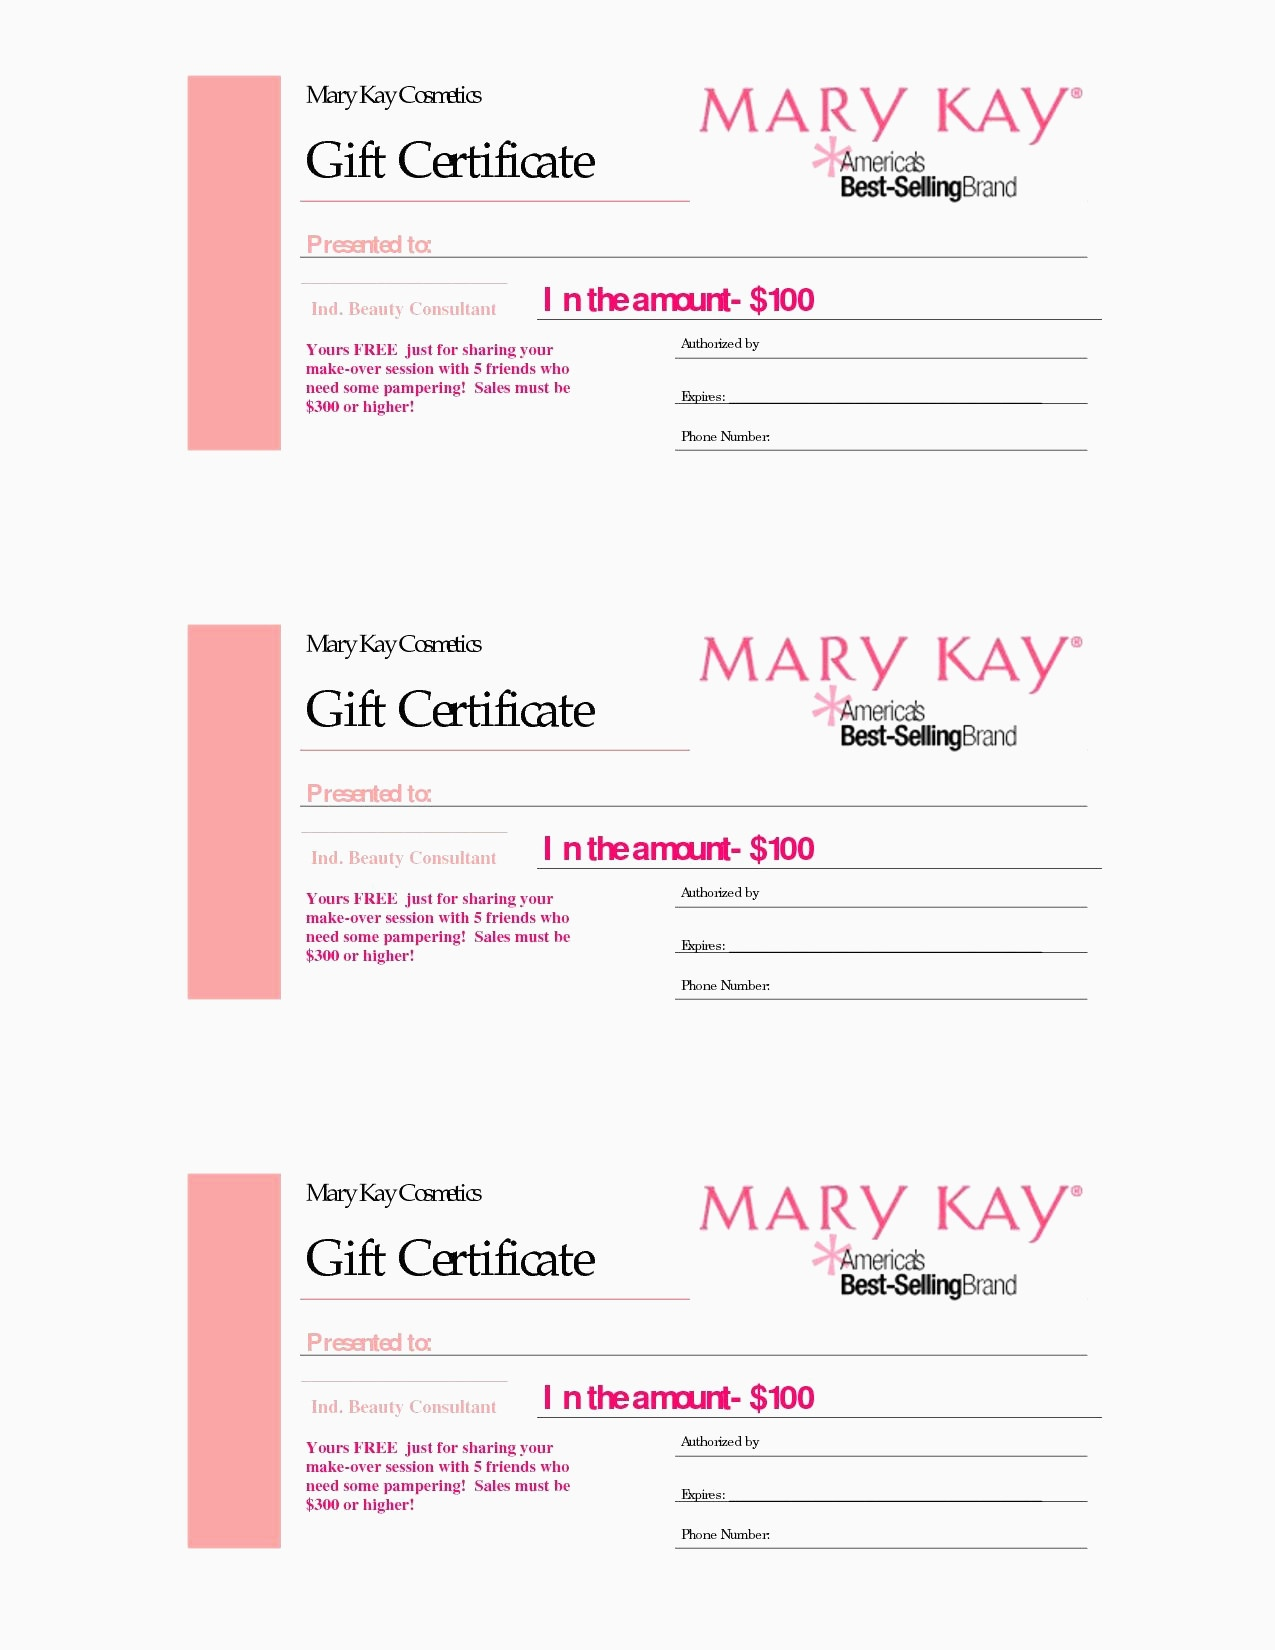 Printable Blank Gift Certificate Template Free Massage Awesome - Free Printable Massage Gift Certificate Templates